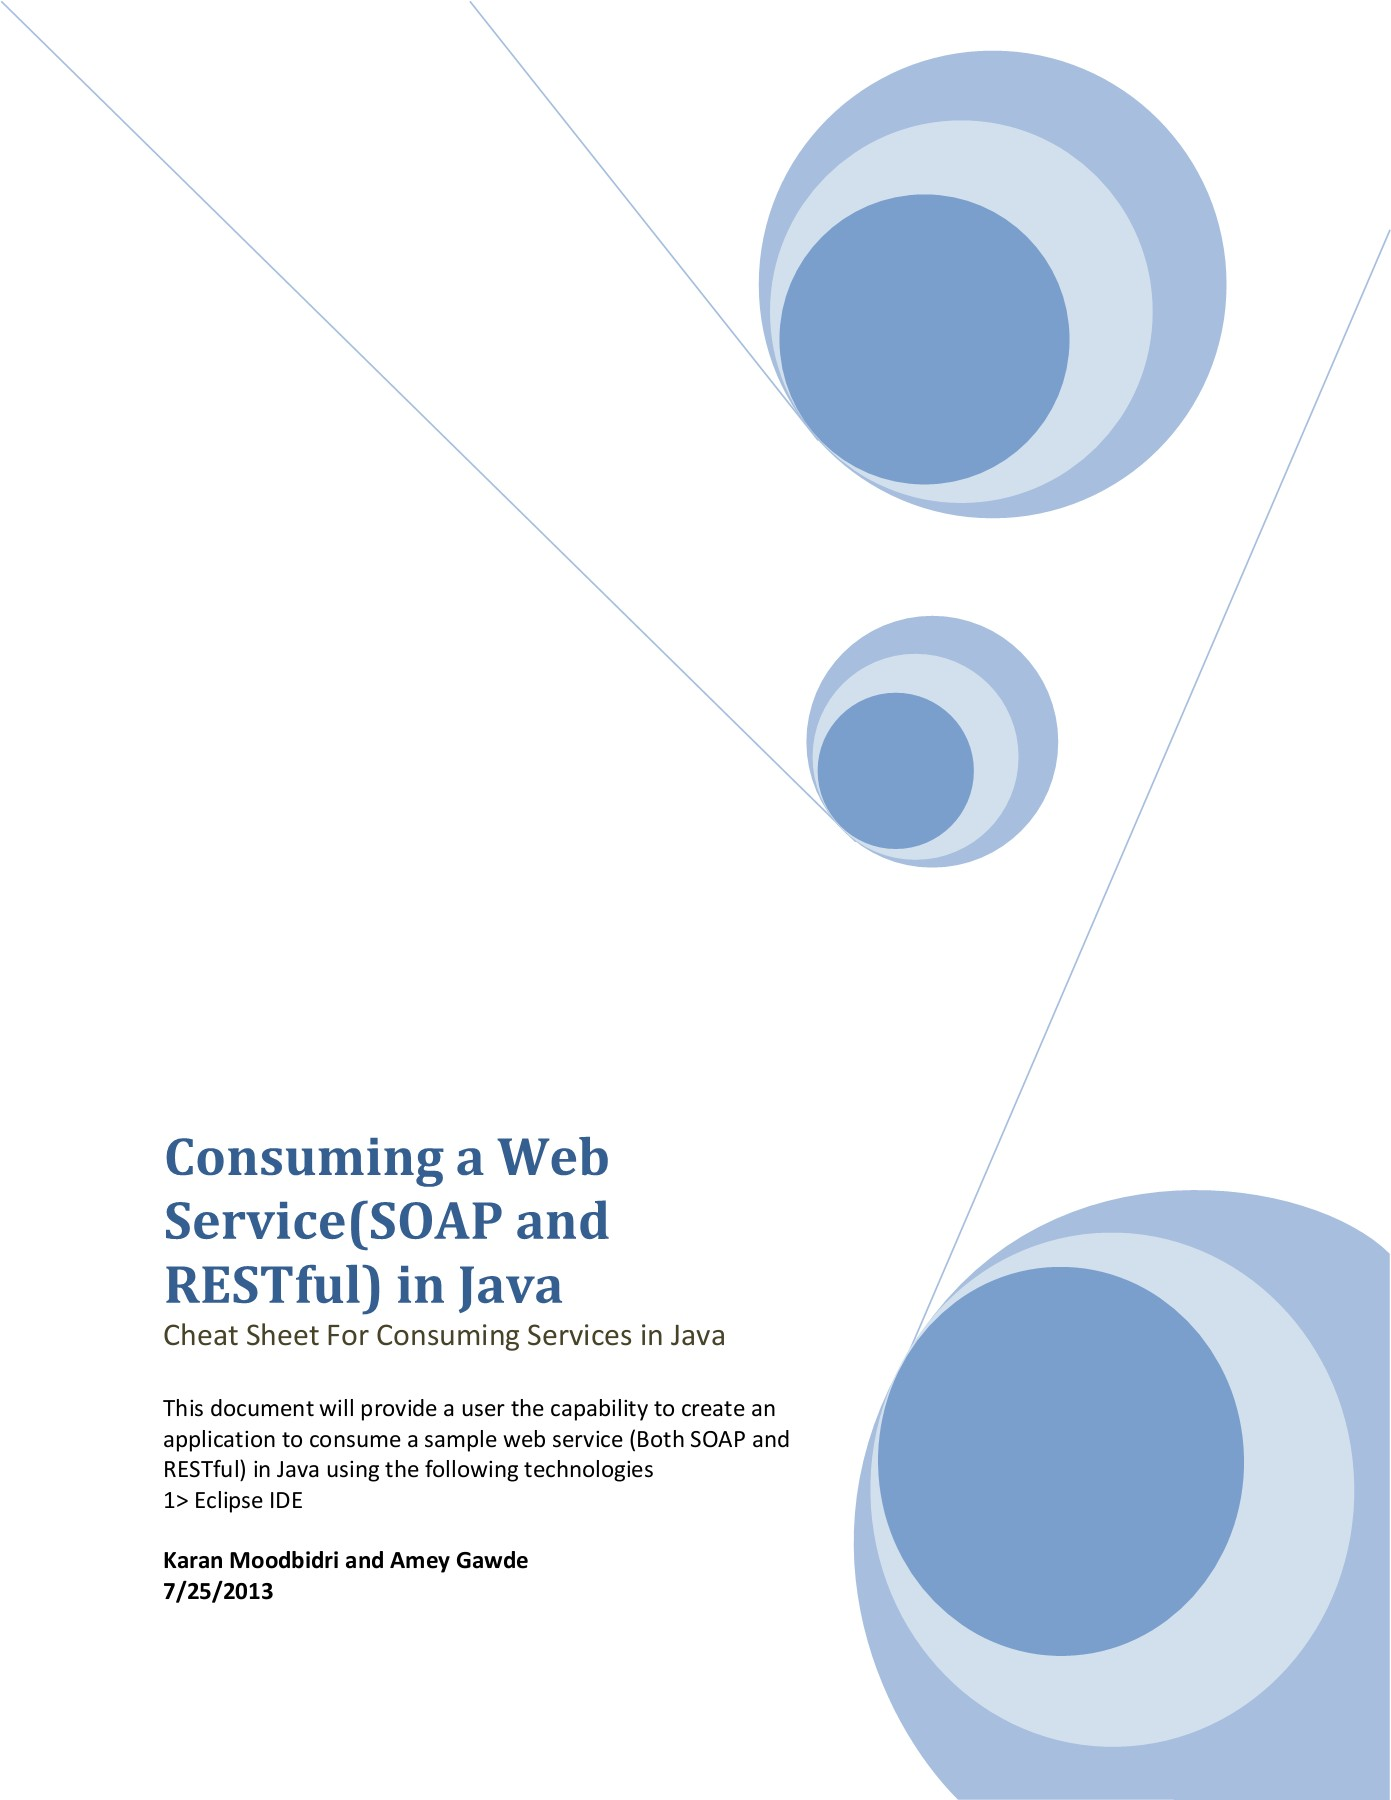 Consuming a Web Service(SOAP and RESTful) in Java